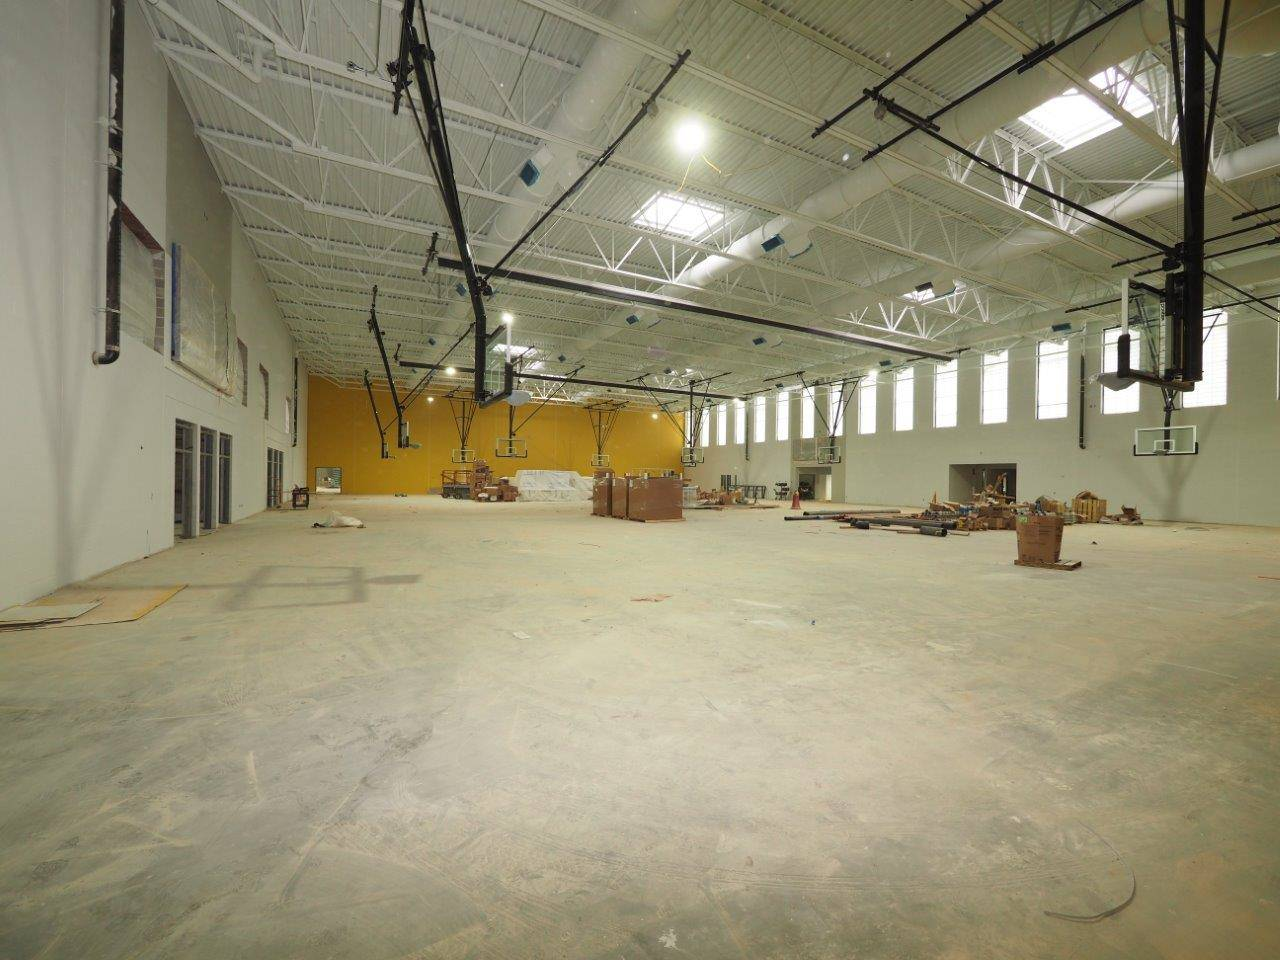 Inside the competition gymnasium